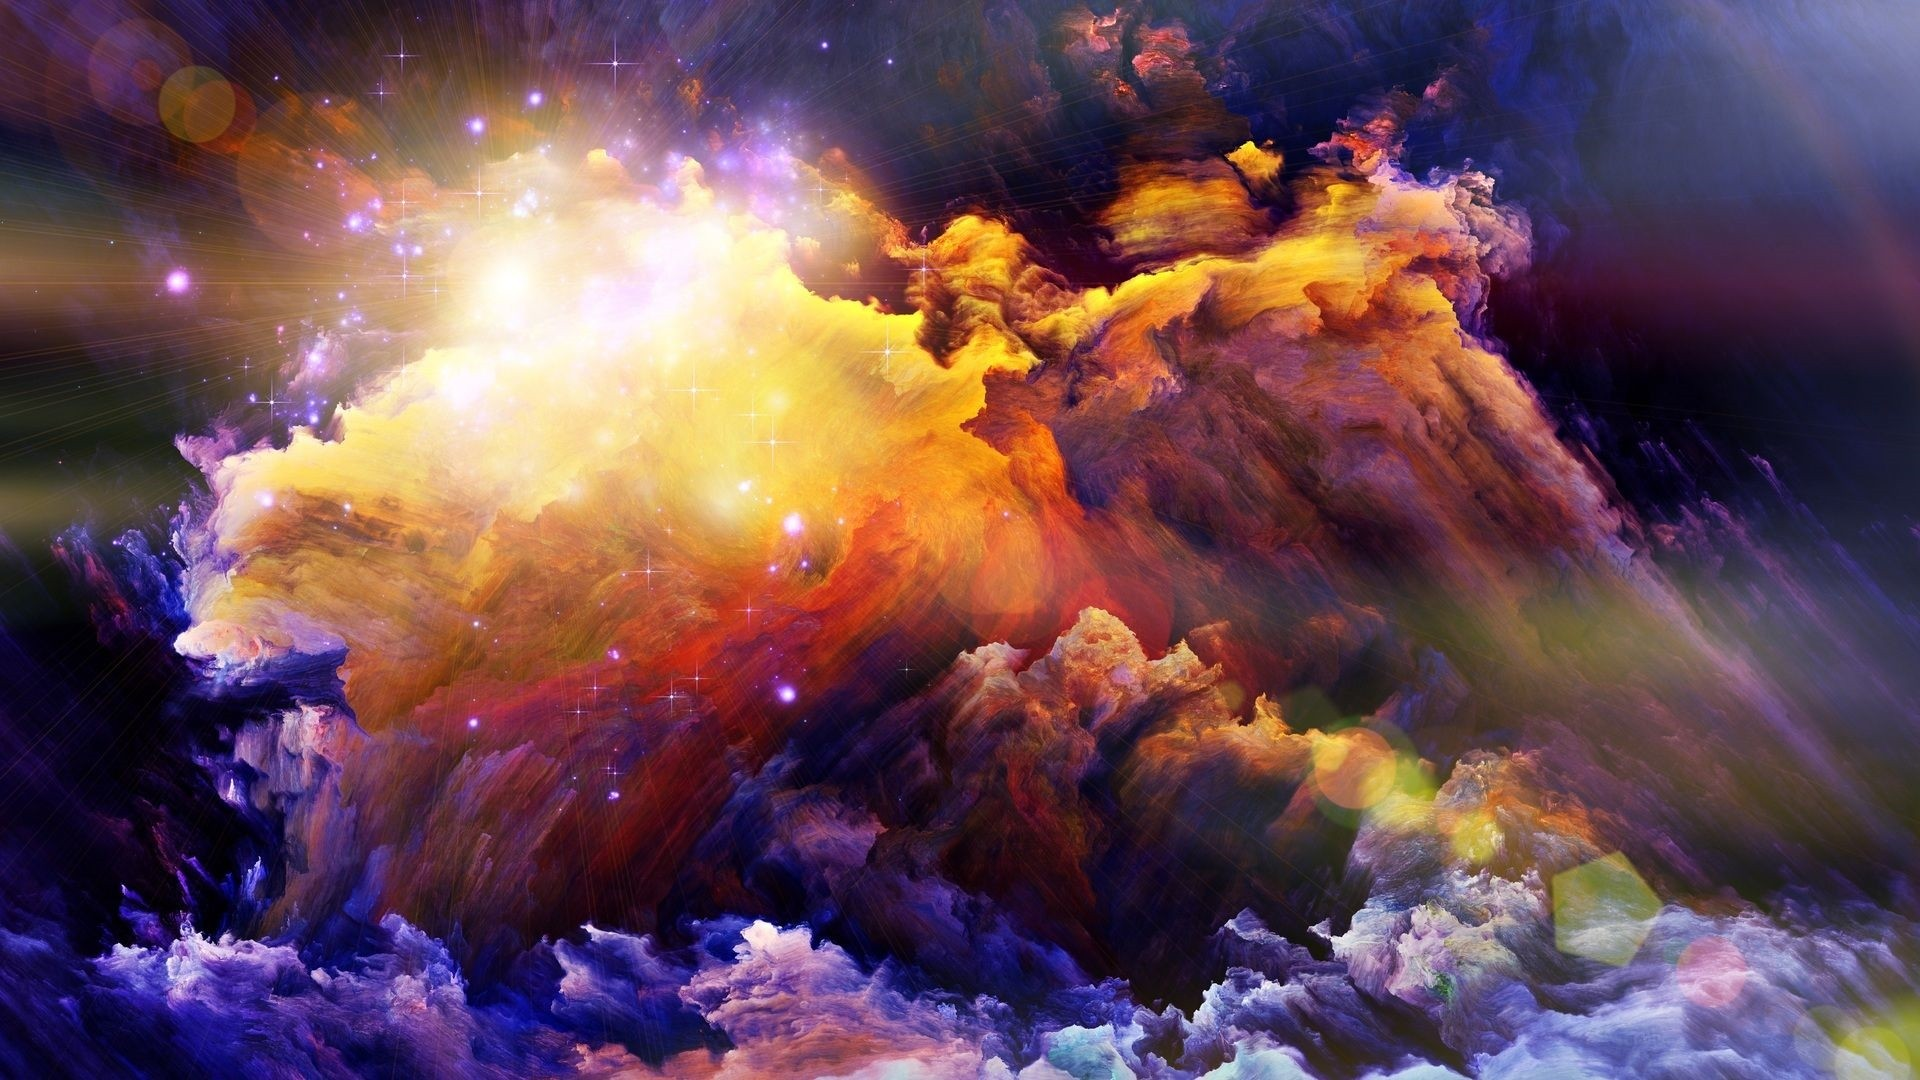 Abstract Space Download Wallpaper